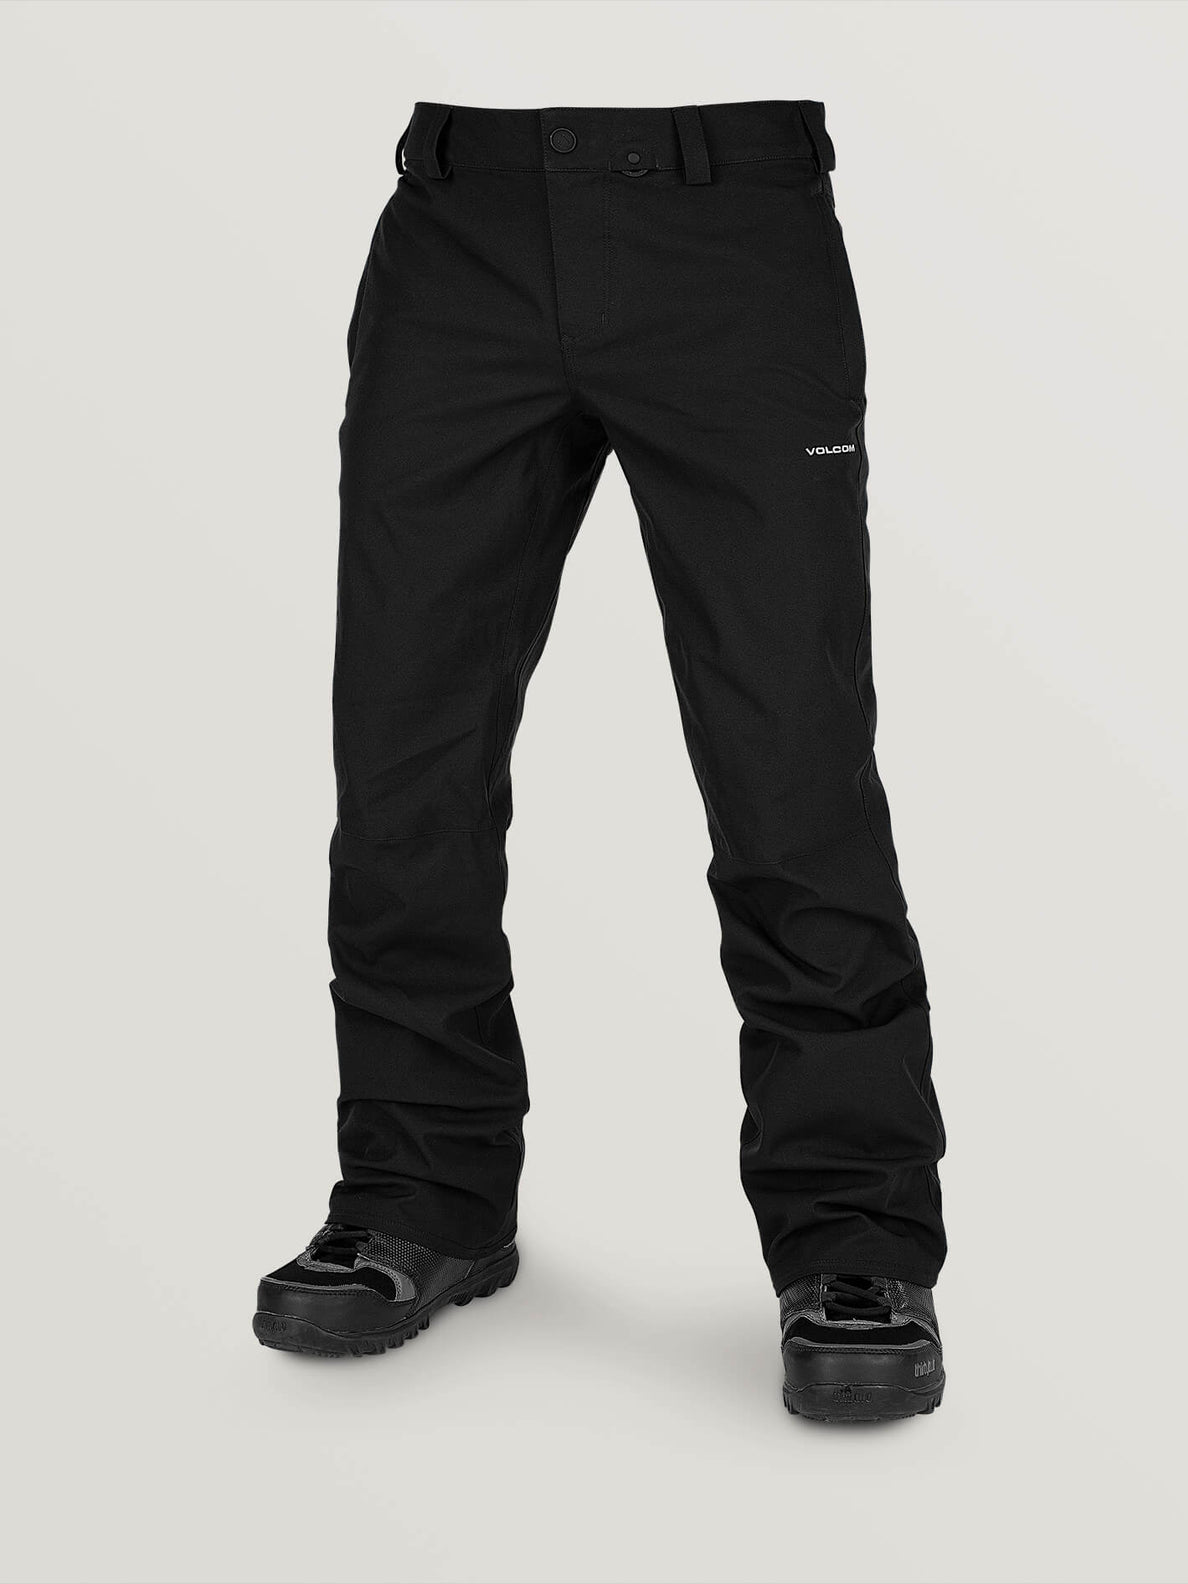 Klocker Tight Pant Black (G1352014_BLK) [F]